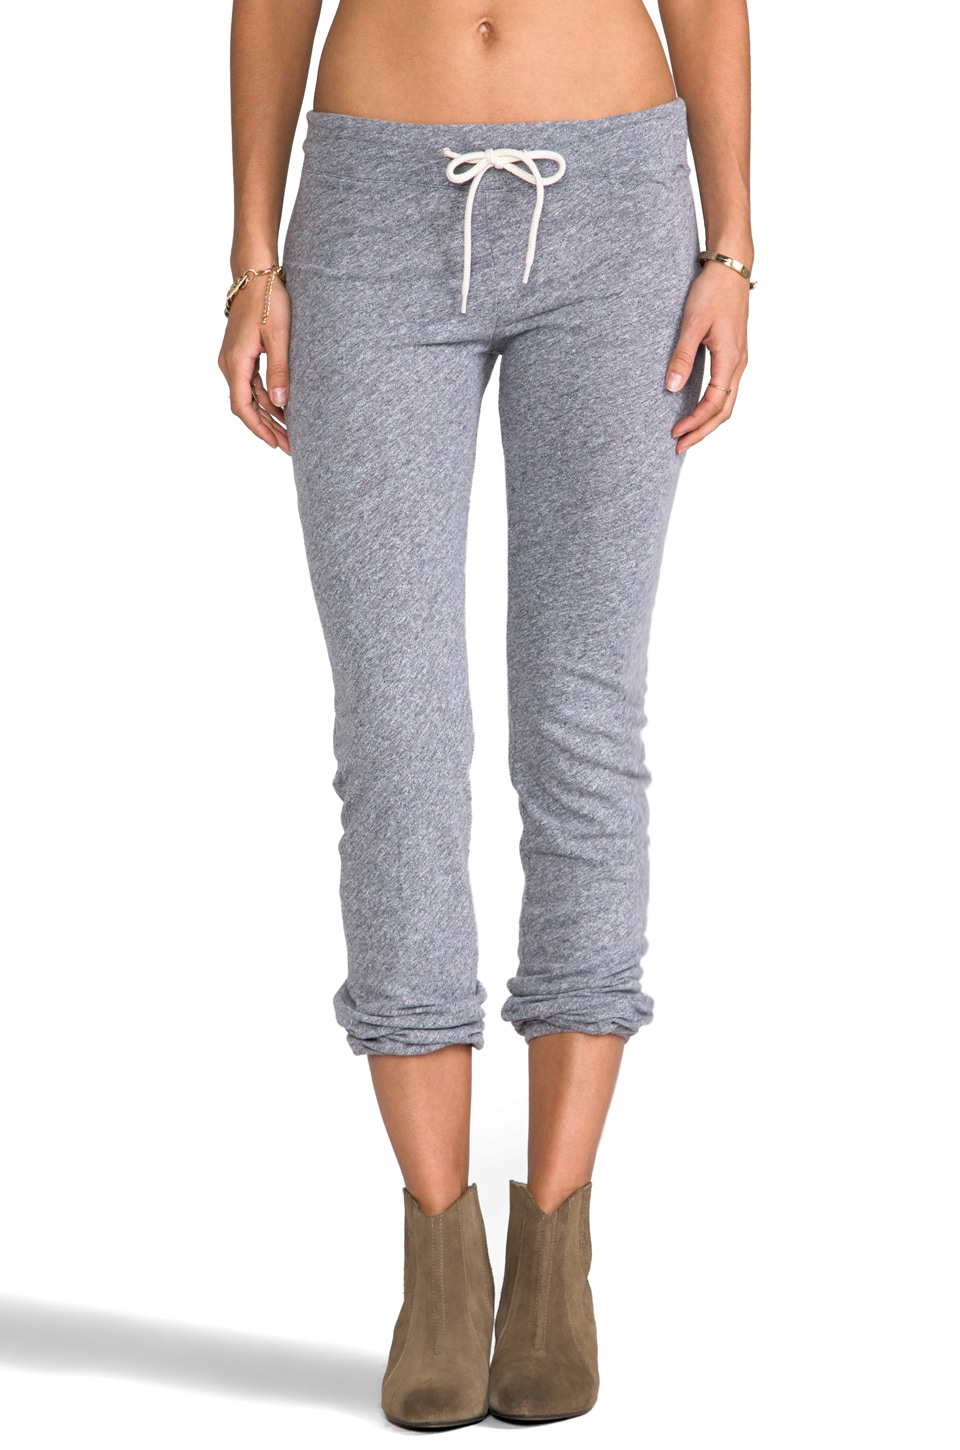 MONROW Granite Vintage Sweats in Granite